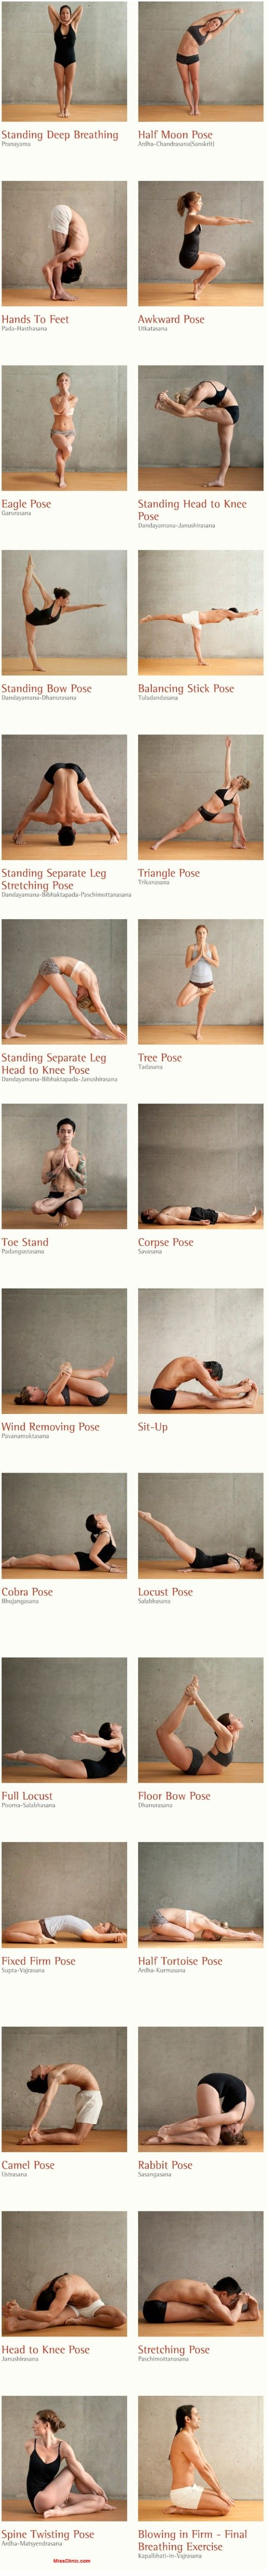 26 Healthy Yoga Postures consisting of 26 postures and 2 breathing exercises,